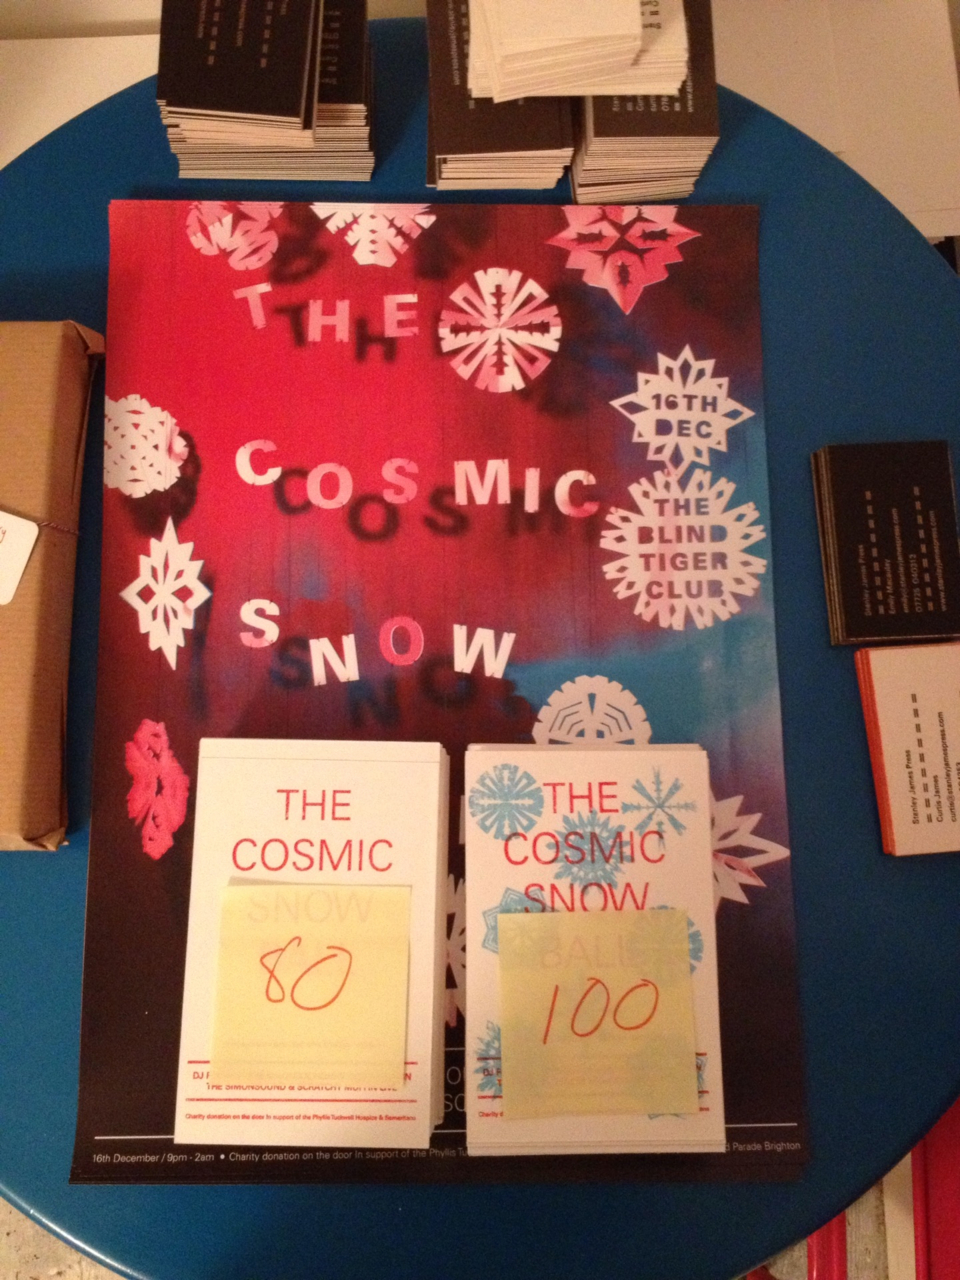 It's been a busy week of making and doing at Stanley James Press. We used the Gocco printer for the first time, to print some flyers for our upcoming charity party The Cosmic Snowball. It's a cool little device for printing postcard size stuff. I'm a bit worried the consumables will run out as its no longer in production. Emily ordered a load of ink, screens and bulbs, so we've got some stock to keep us going. Emily has also been busy putting the finishing touches on her calendar for 2012, which is heading off to the screen printers next week. Oh, and we finally got around to making some letterpress business cards for us. I've been super busy with People Who Do, lots of changes, new challenges and opportunities to leave the safety of my comfort zone, which is good. I'm loving how we've grown the company, next year is going to be very exciting. In between People Who Do, sleeping, trying not to stumble into drying printing and developing negatives, I've been working on the Microsoft Phone Book video, which is almost ready to share. Took some more film photos yesterday, so I need to develop and scan and get them into the film. But, we are really happy with it.